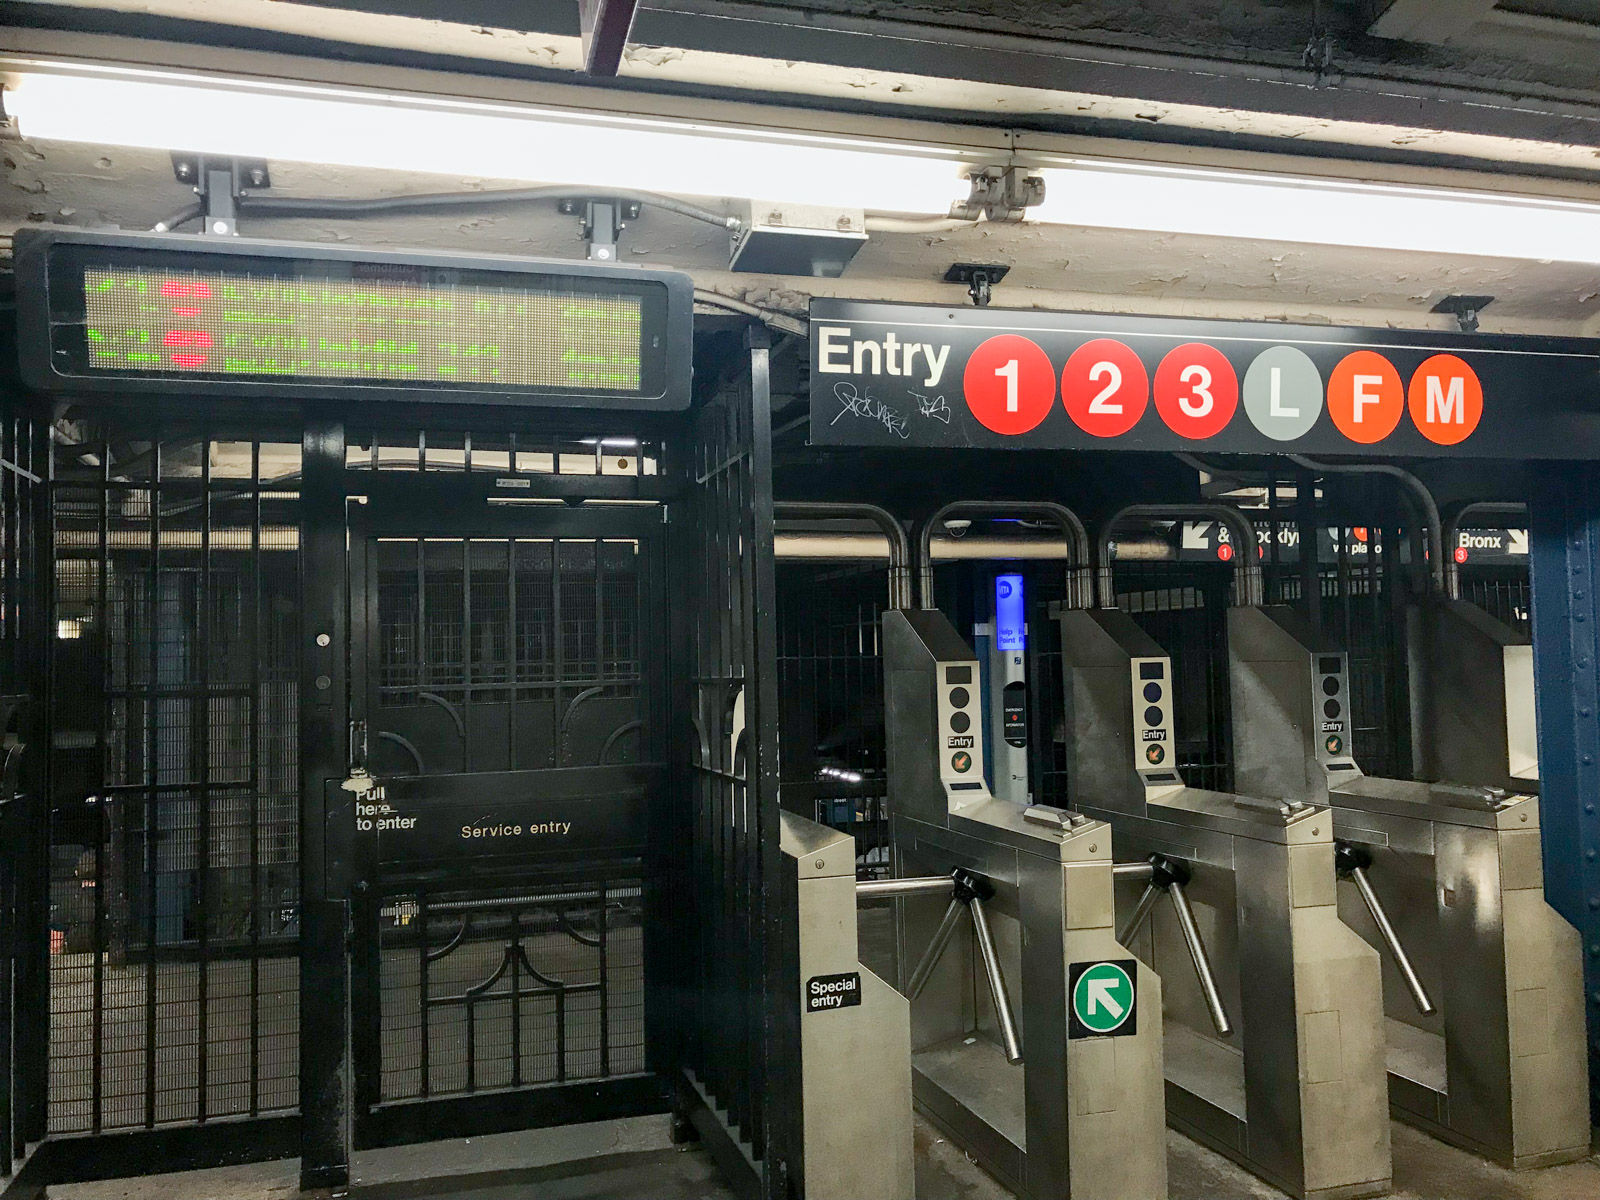 A row of turnstiles with subway lines printed on a sign above them. To the left is a black service entry/exit gate that resembles a door